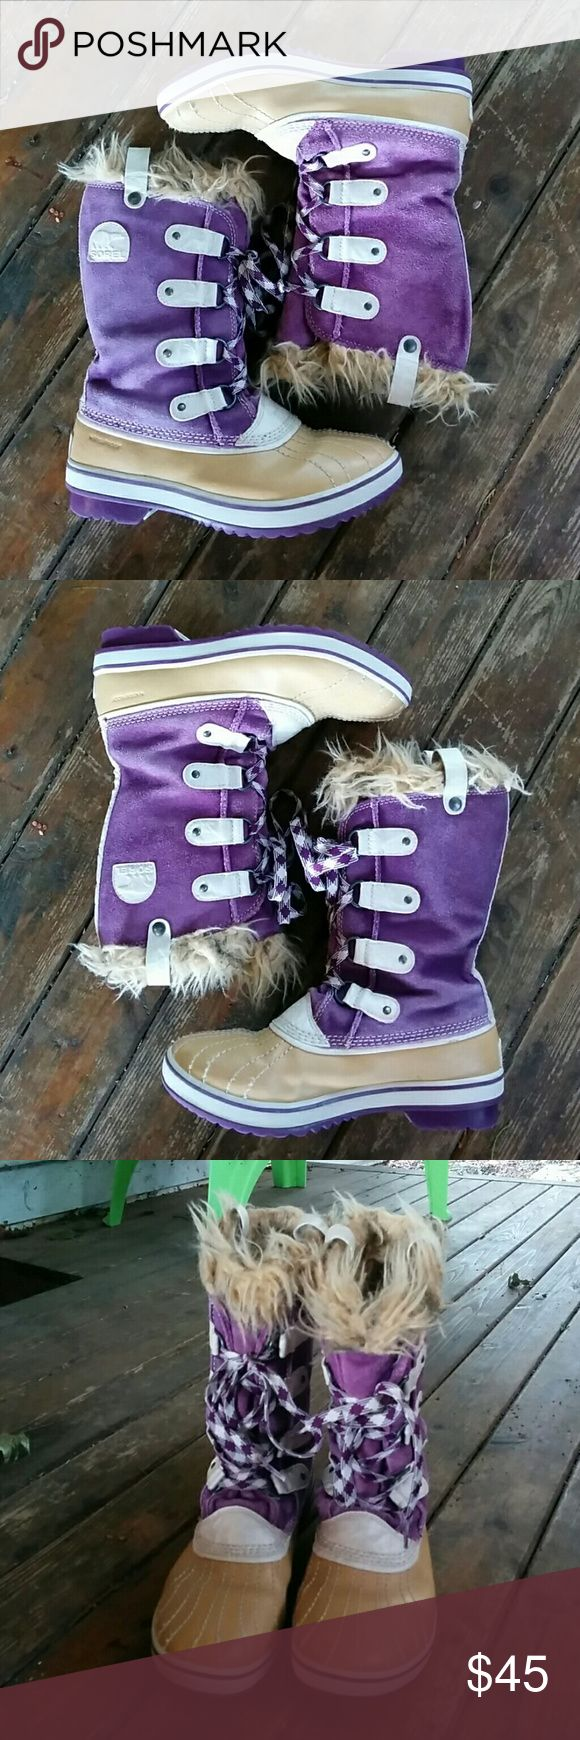 Sorel winter boots Just in time for Fall, Sorel faux fur lined winter boot. Rubber bottoms purple suede uppers. Suresh does have some fading from wear, and the fur is a bit mattress. Soles after great! Overall nice boots!! Size 5. Sorel Shoes Winter & Rain Boots